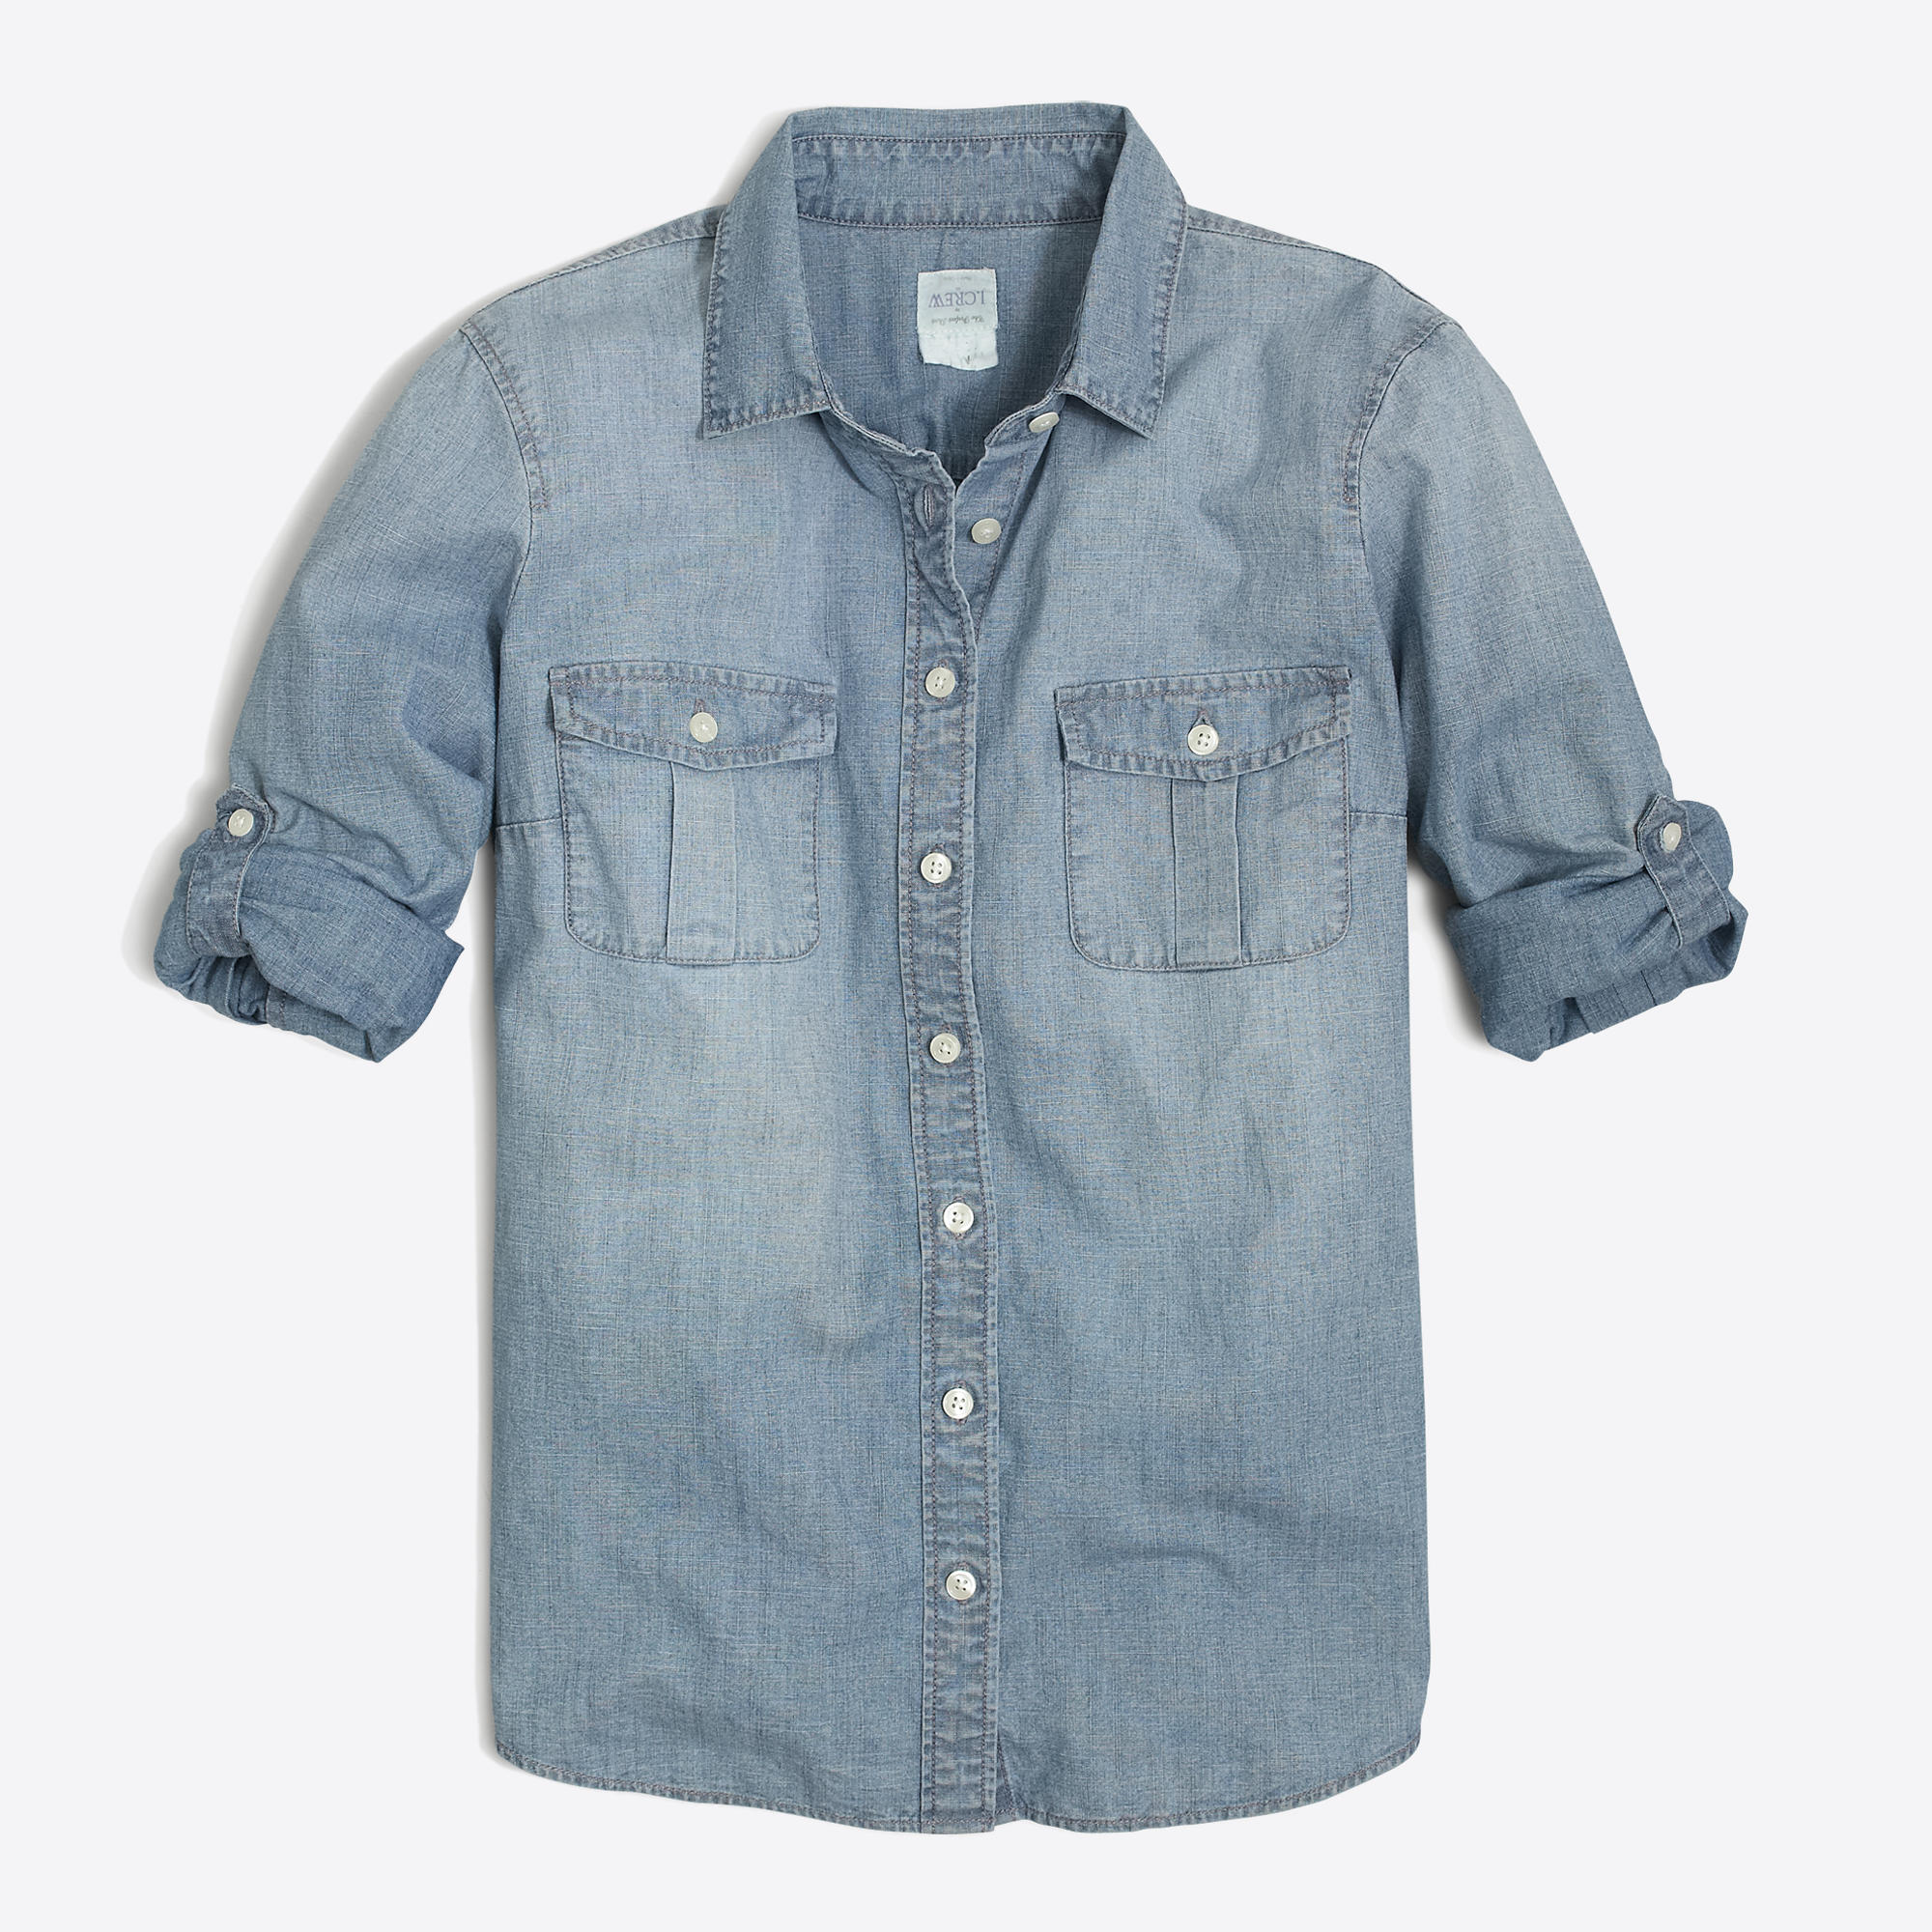 Classic chambray shirt in perfect fit women 39 s shirts j for Chambray shirt women